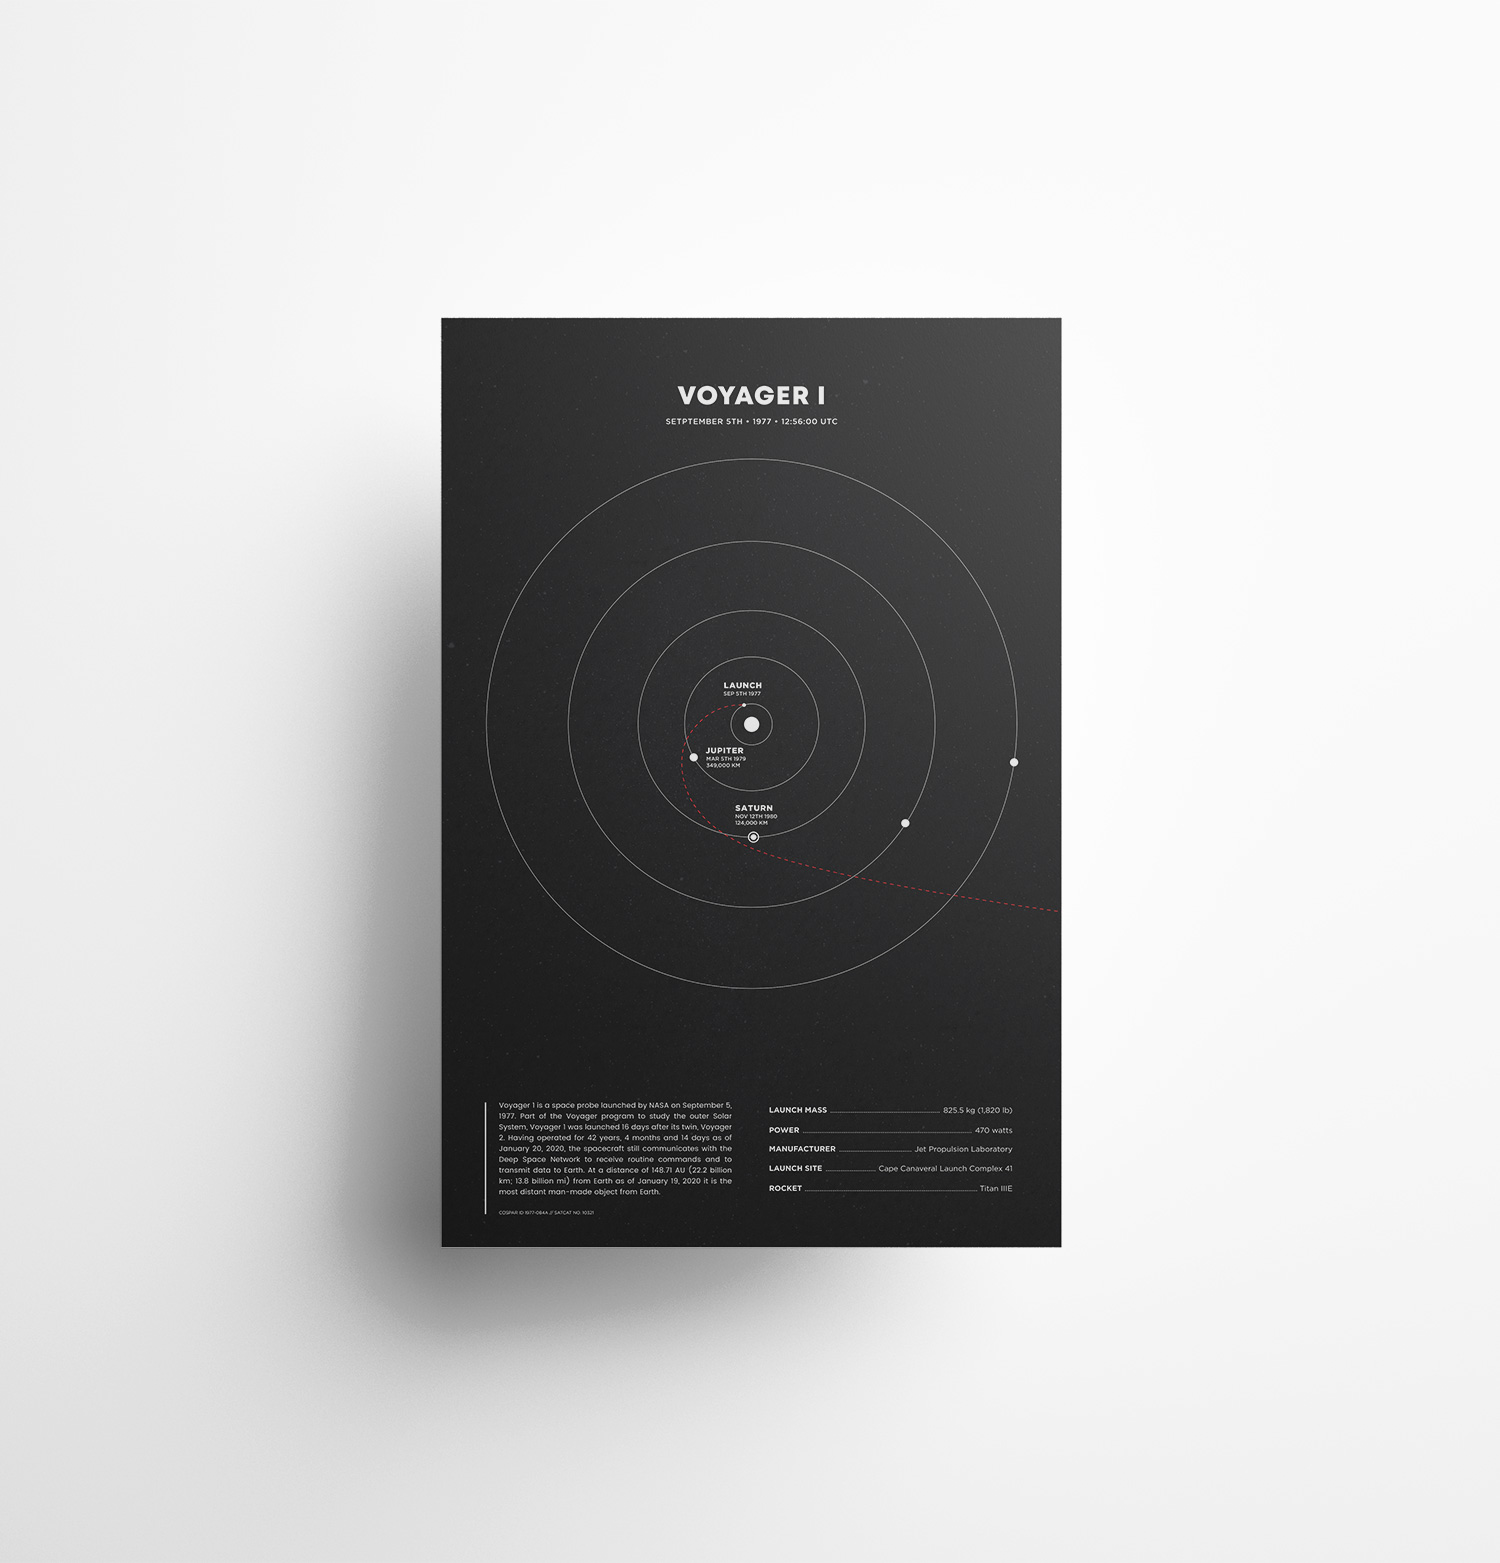 Voyager 1 Minimalist Space Poster